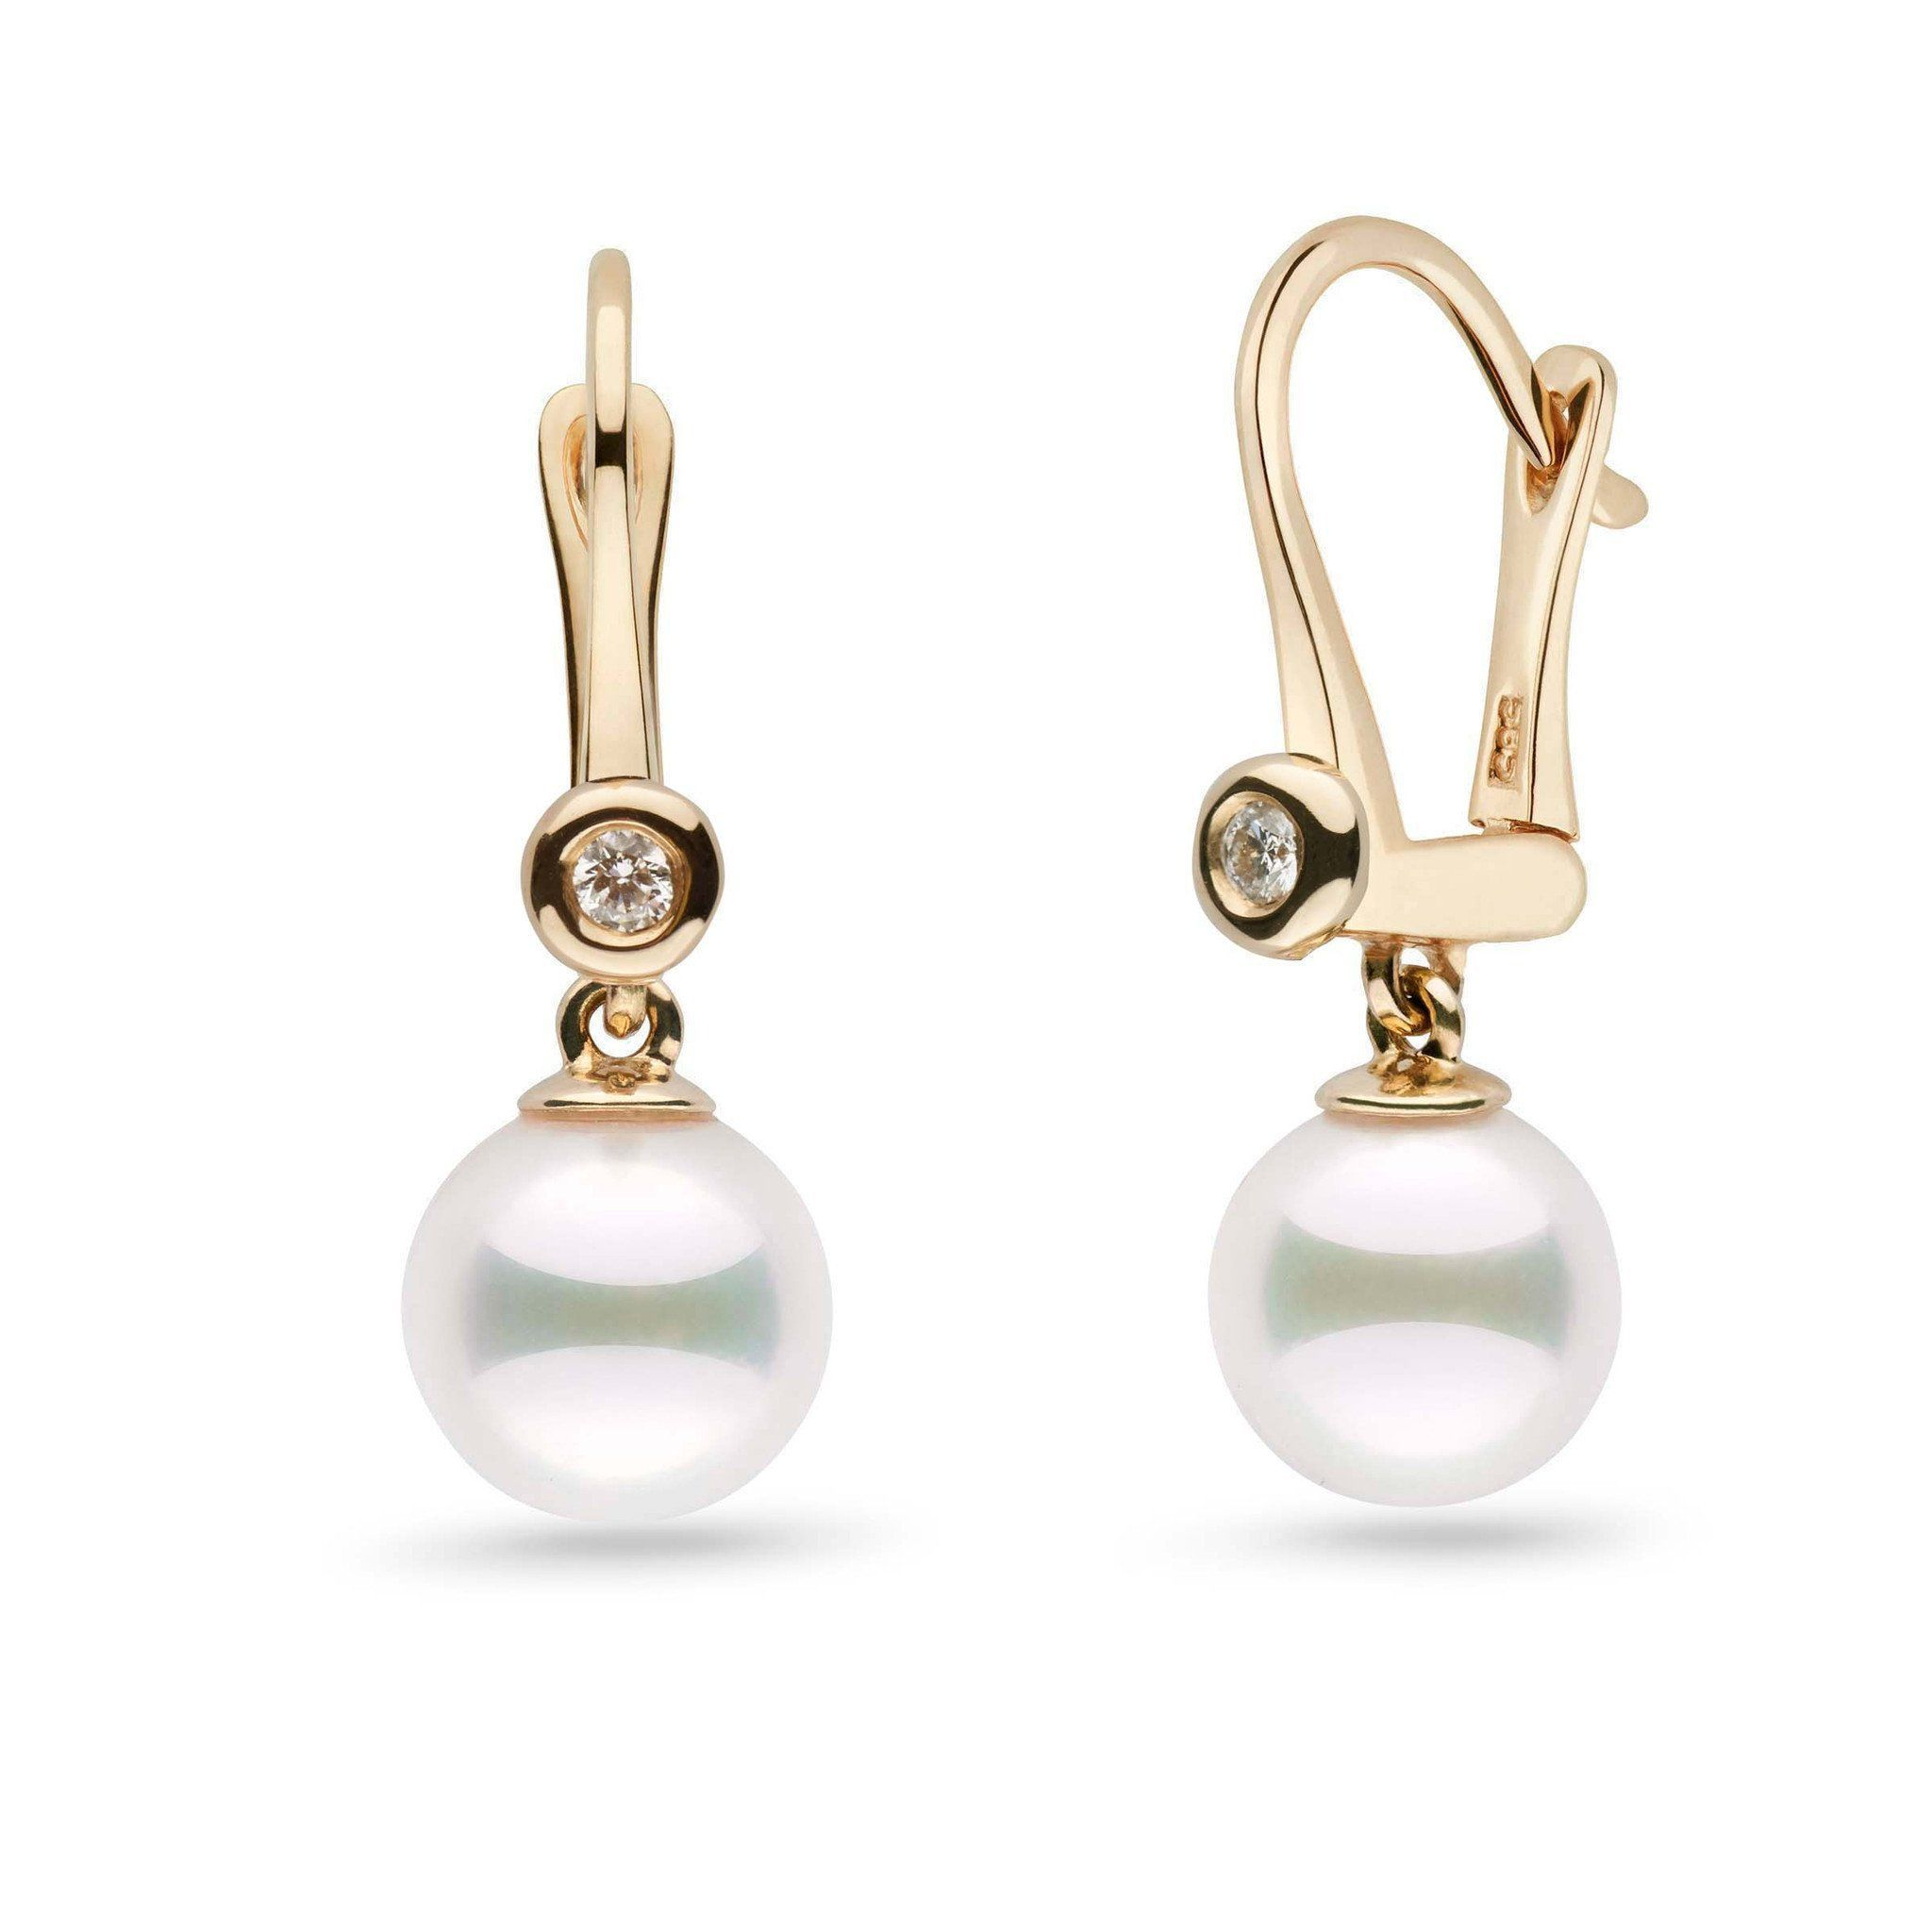 Romantic Collection Akoya 8.0-8.5 mm Pearl & Diamond Dangle Earrings